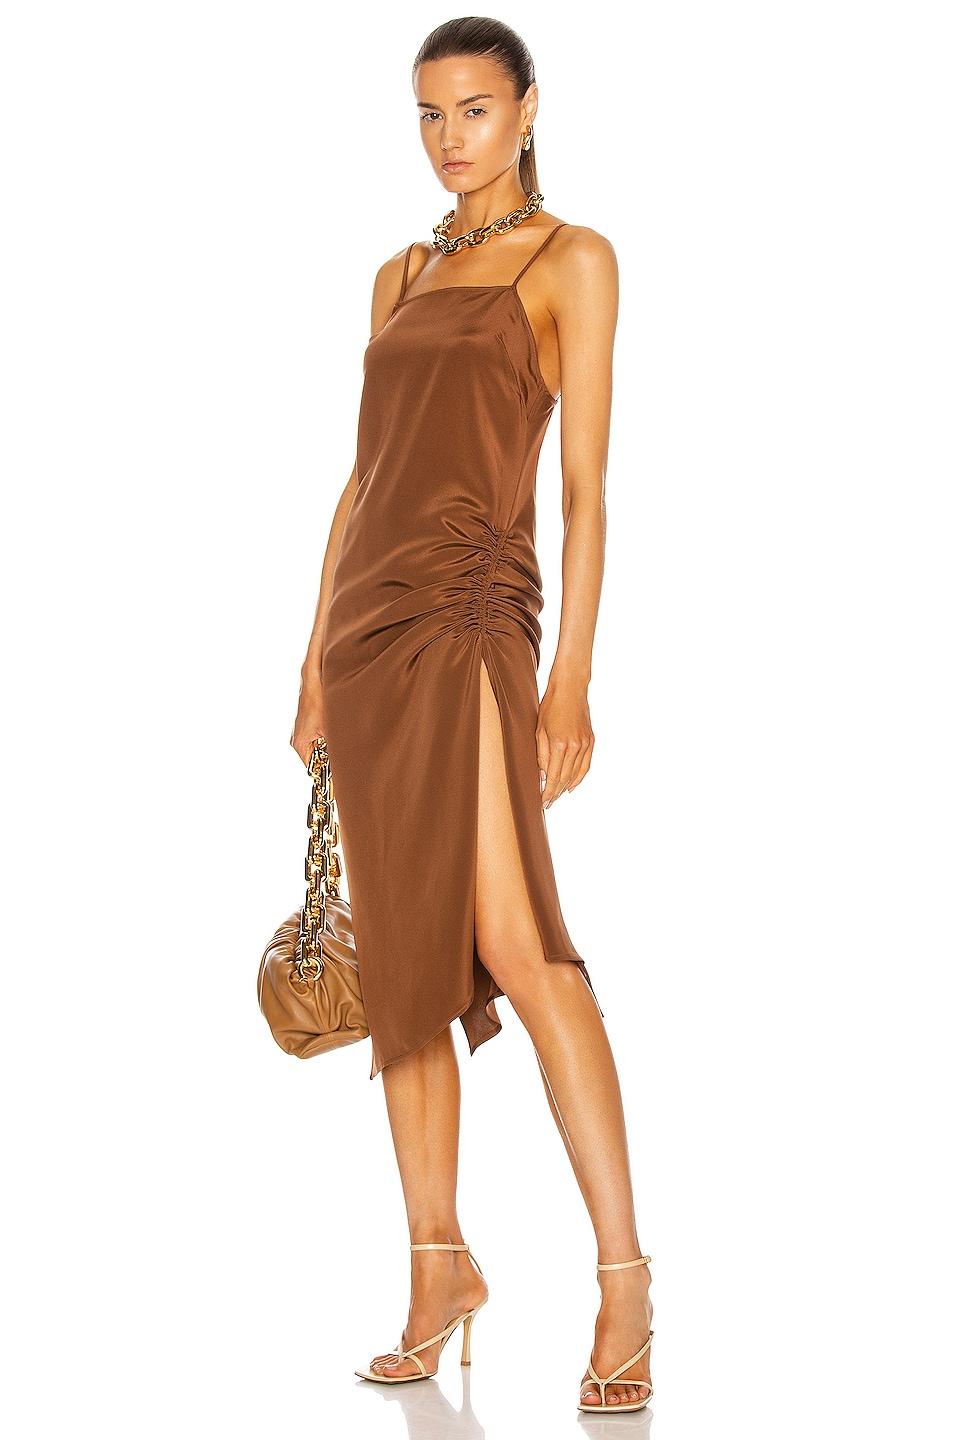 Image 1 of KENDRA DUPLANTIER Maris Dress in Brown